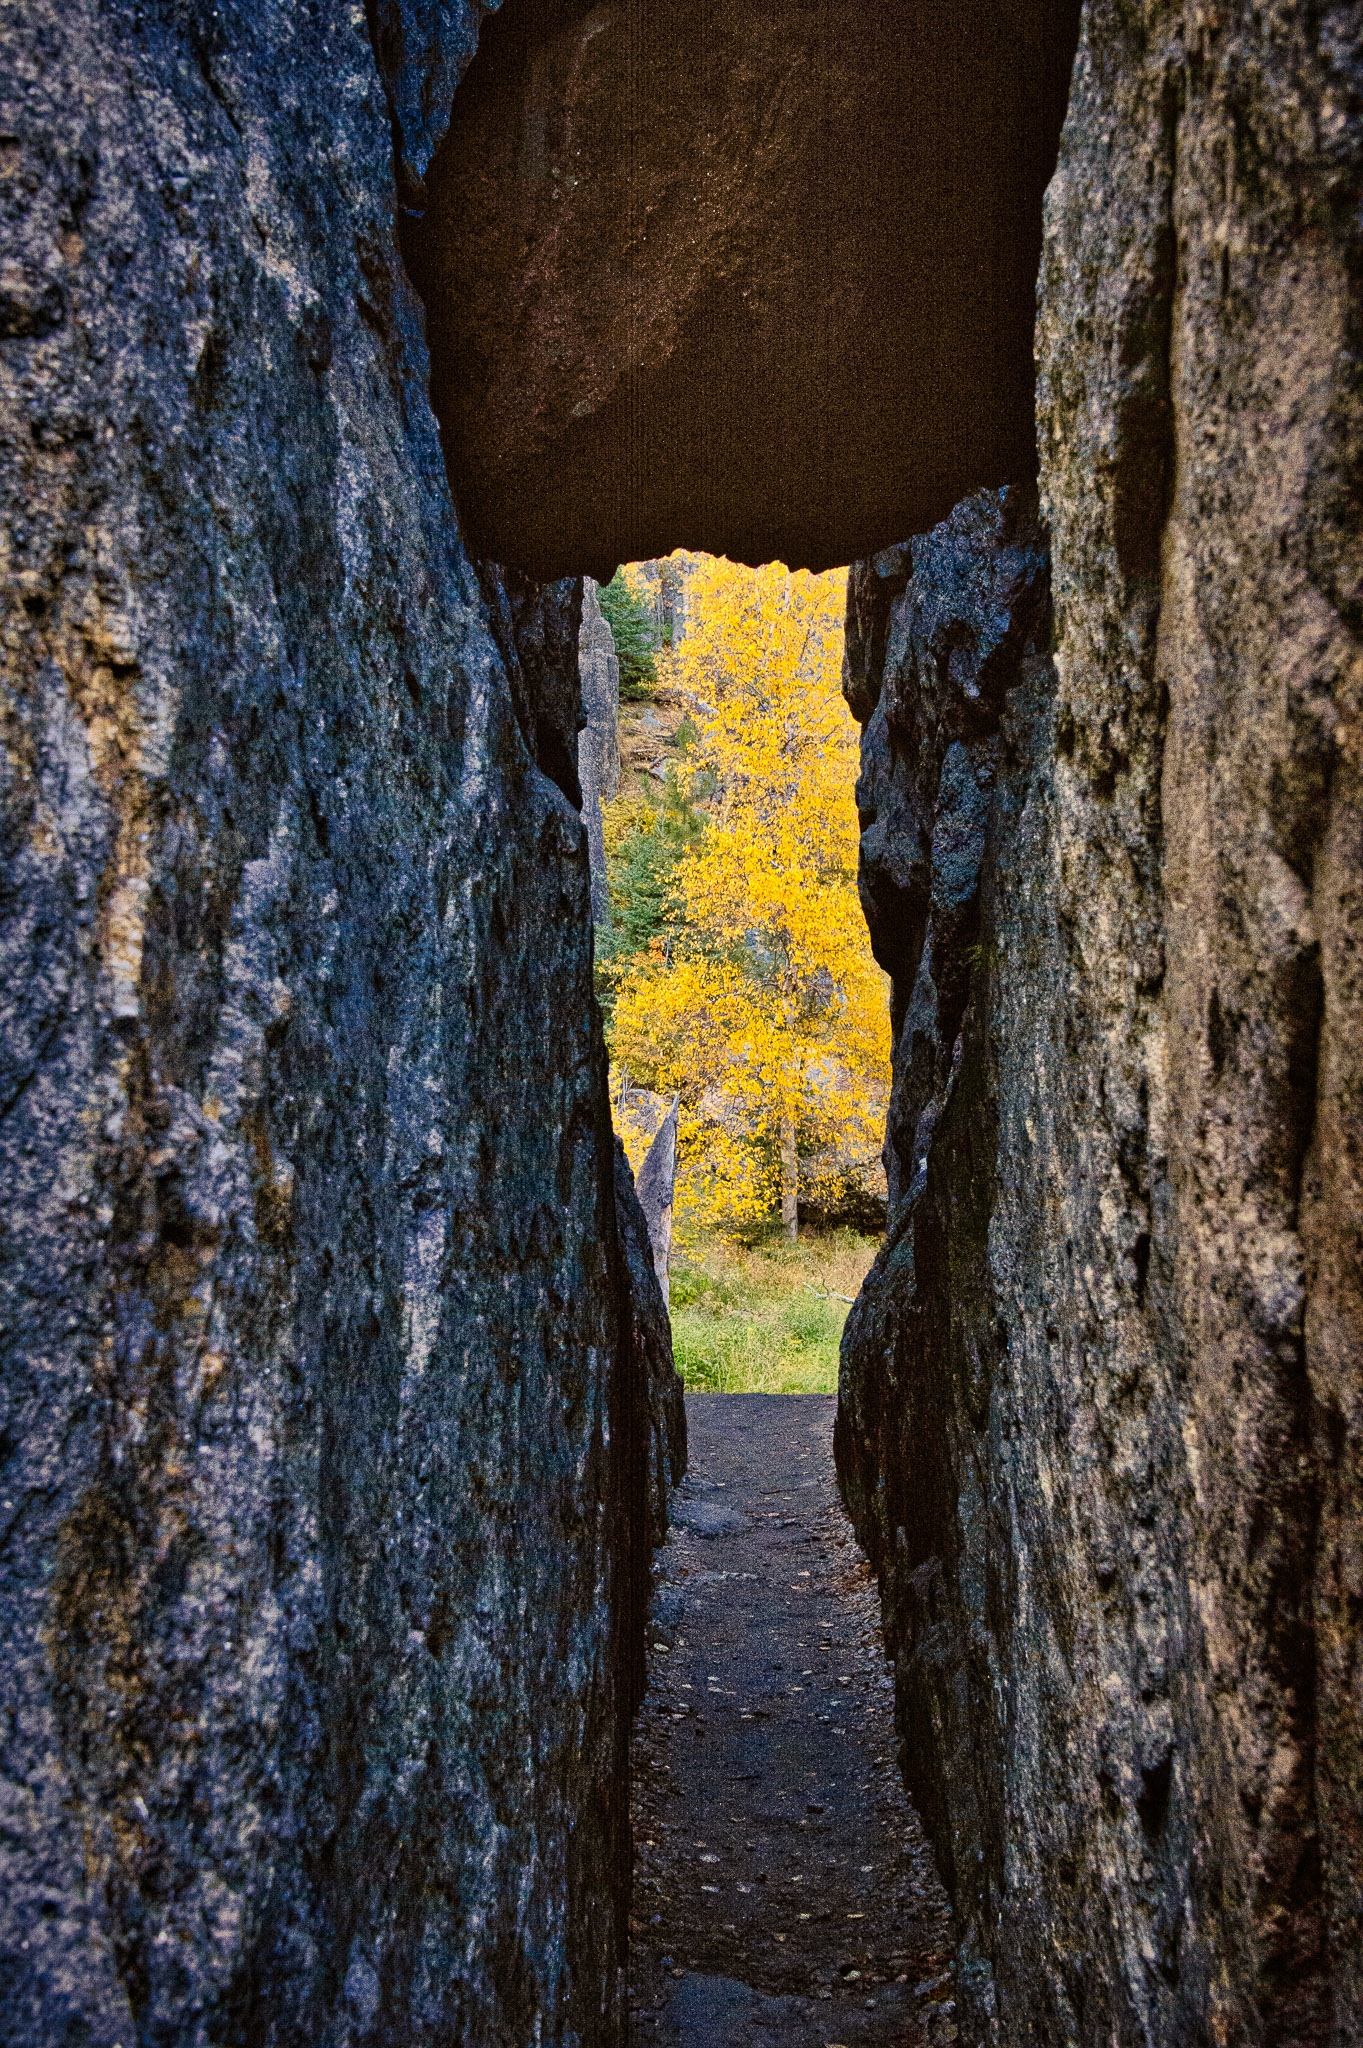 A view from Sylvan Lake through a tunnel to the autumn trees in the distance.